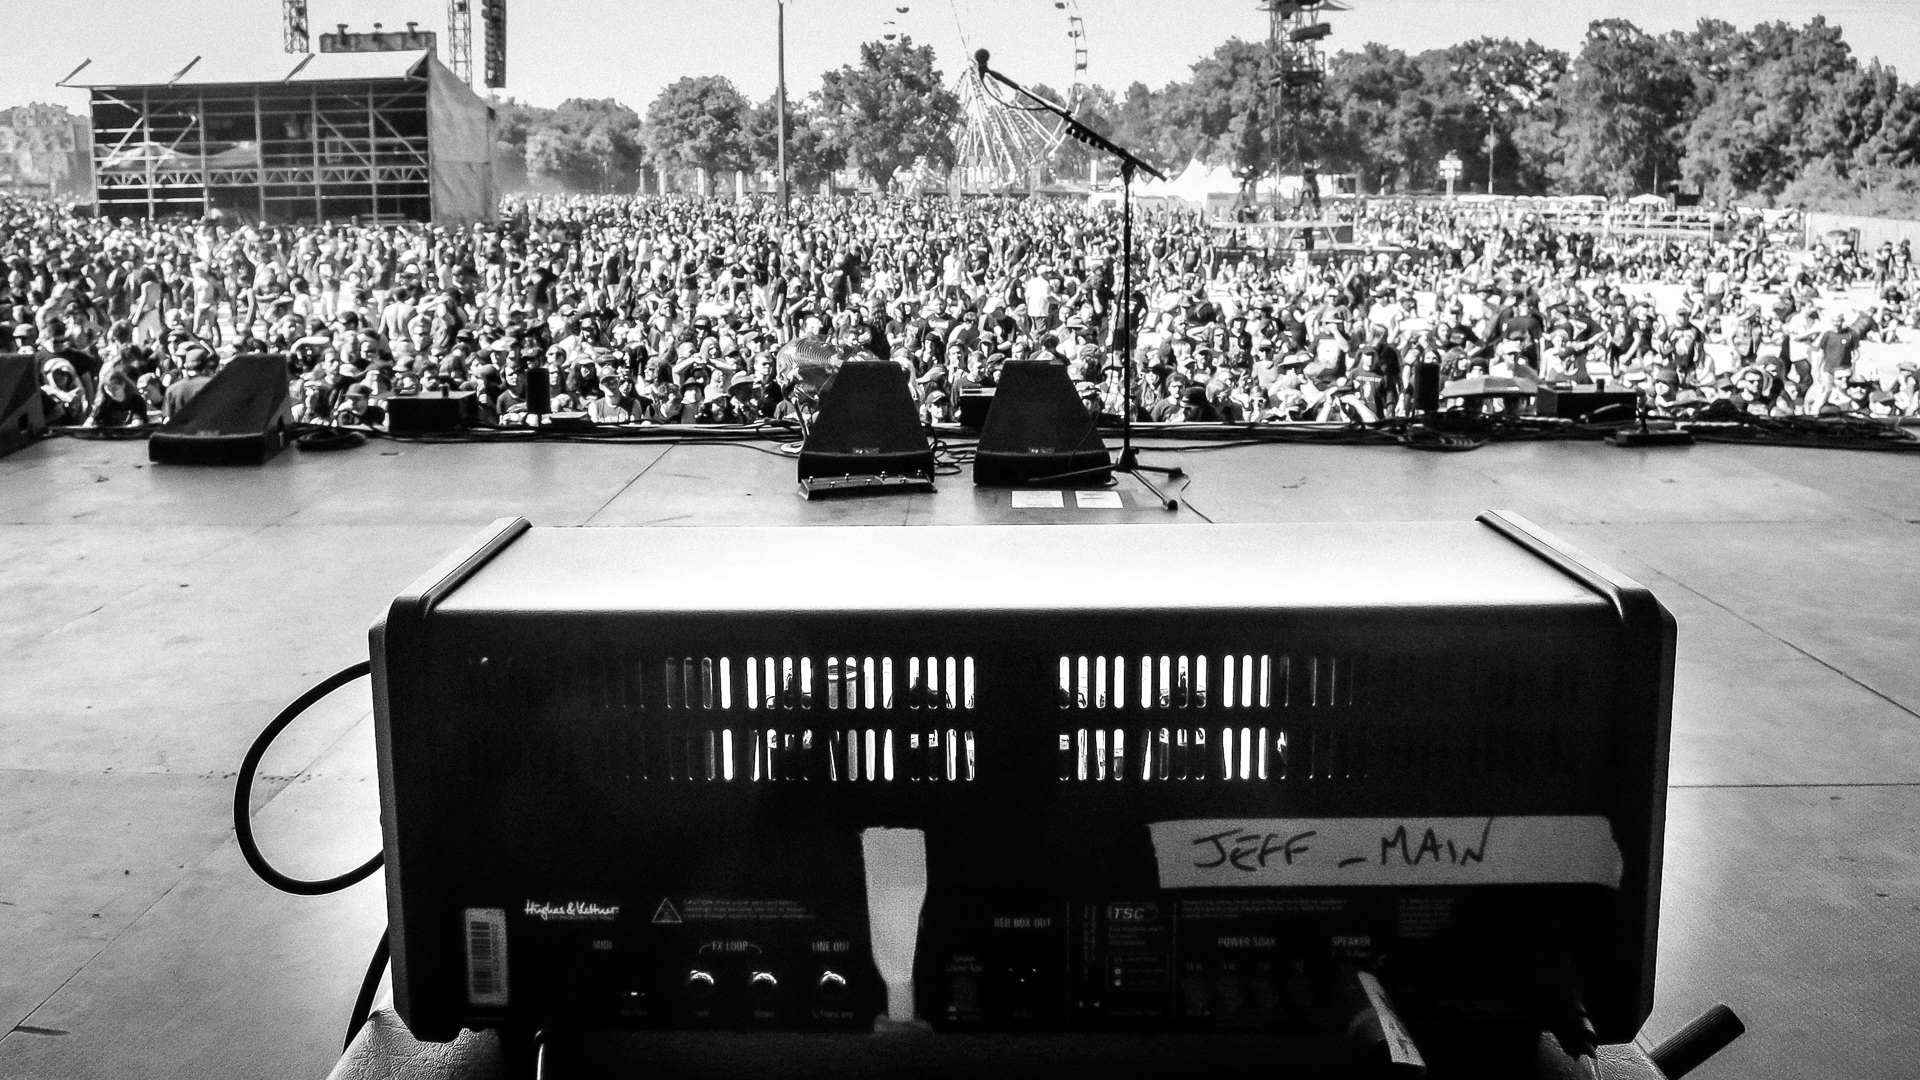 Empty outdoor rock stage - Ready To Rock The Stage At Hellfest In France This Amp S Facing The Crowd Head